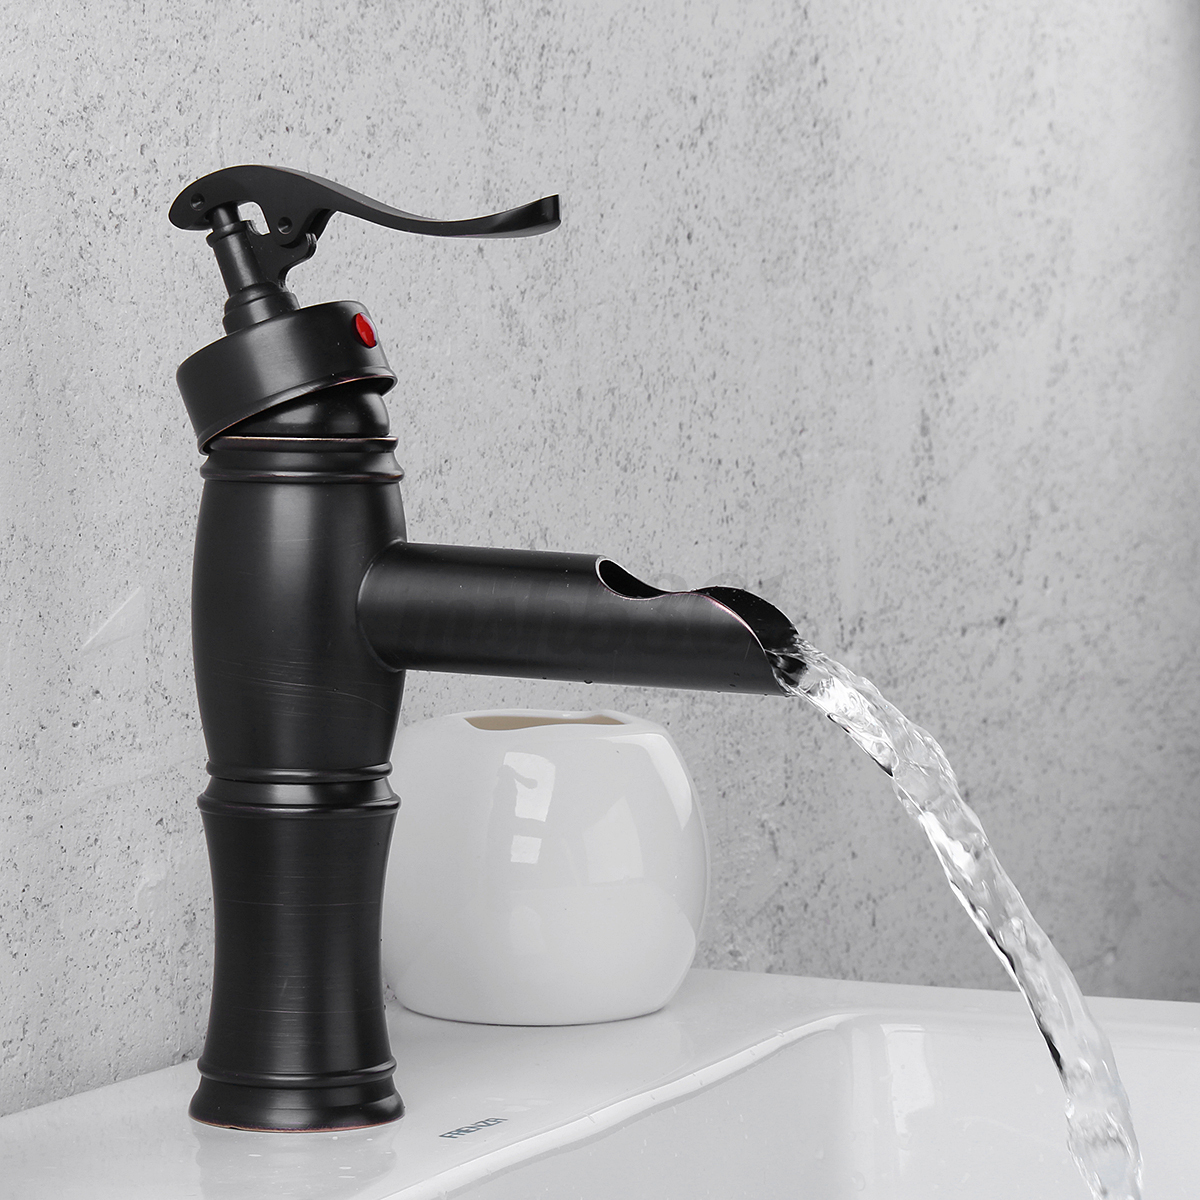 oil rubbed bronze bathroomkitchen sink vessel faucet